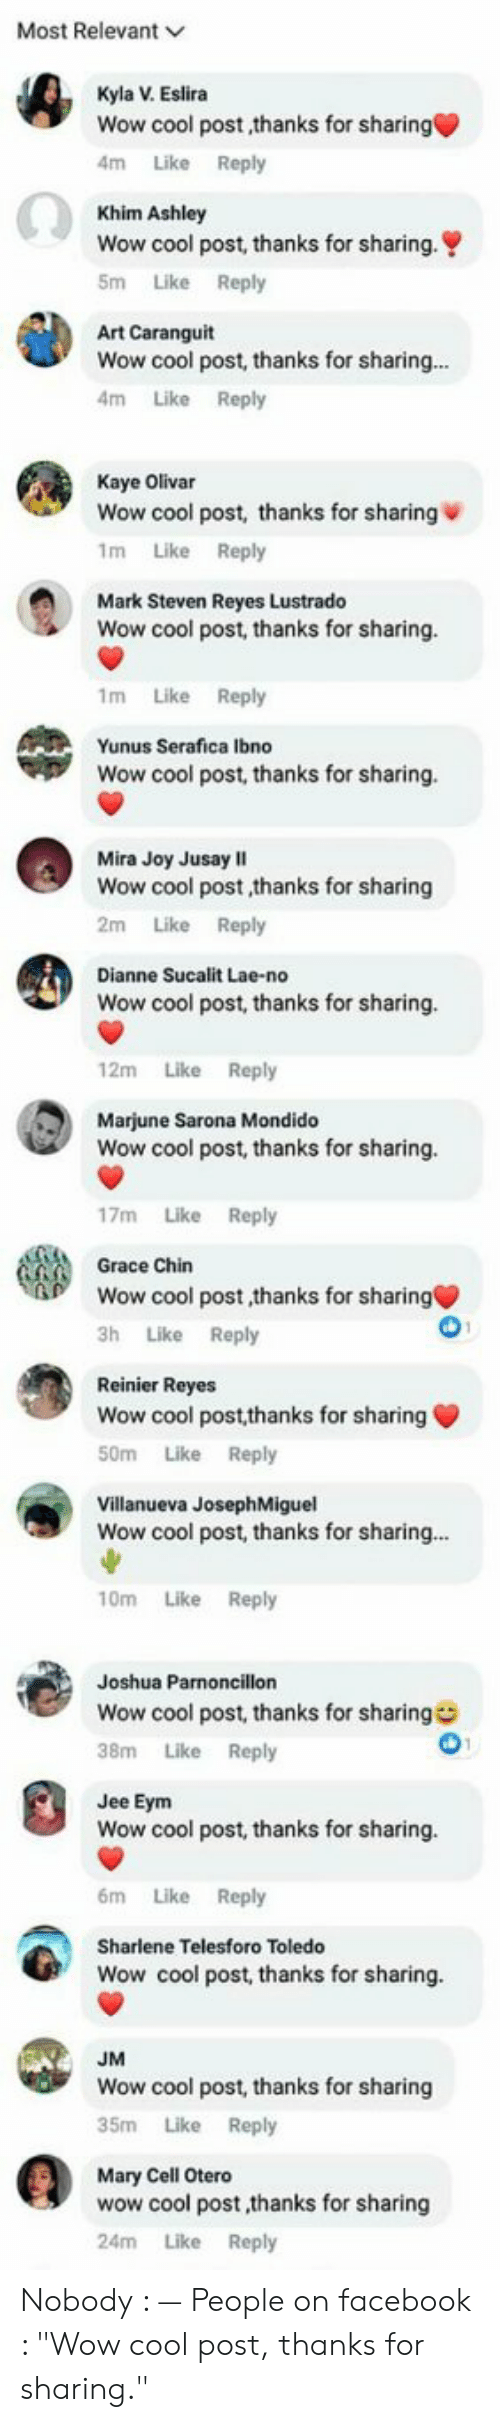 """Facebook, Wow, and Cool: Most Relevant  Kyla V Eslira  Wow cool post,thanks for sharing  4m Like Reply  Khim Ashley  Wow cool post, thanks for sharing.  5m Like Reply  Art Caranguit  Wow  cool post, thanks for sharing  4m Like Reply  Kaye Olivar  Wow cool post, thanks for sharing  1m Like Reply  Mark Steven Reyes Lustrado  Wow cool post, thanks for sharing.  1m Like Reply  Yunus Serafica lbno  Wow cool post, thanks for sharing.  Mira Joy Jusay II  Wow cool post,thanks for sharing  2m Like Reply  Dianne Sucalit Lae-no  Wow cool post, thanks for sharing.  12m Like Reply  Marjune Sarona Mondido  Wow cool post, thanks for sharing.  17m Like Reply  Grace Chin  Wow cool post,thanks for sharing  3h Like Reply  Reinier Reyes  Wow cool post,thanks for sharing  50m Like Reply  Villanueva JosephMiguel  Wow cool post, thanks for sharing..  10m Like Reply  Joshua Parnoncillon  Wow cool post, thanks for sharing  38m Like Reply  Jee Eym  Wow cool post, thanks for sharing.  6m Like Reply  Sharlene Telesforo Toledo  Wow cool post, thanks for sharing  JM  Wow cool post, thanks for sharing  35m Like Reply  Mary Cell Otero  wow cool post,thanks for sharing  24m Like Reply Nobody : — People on facebook : """"Wow cool post, thanks for sharing."""""""